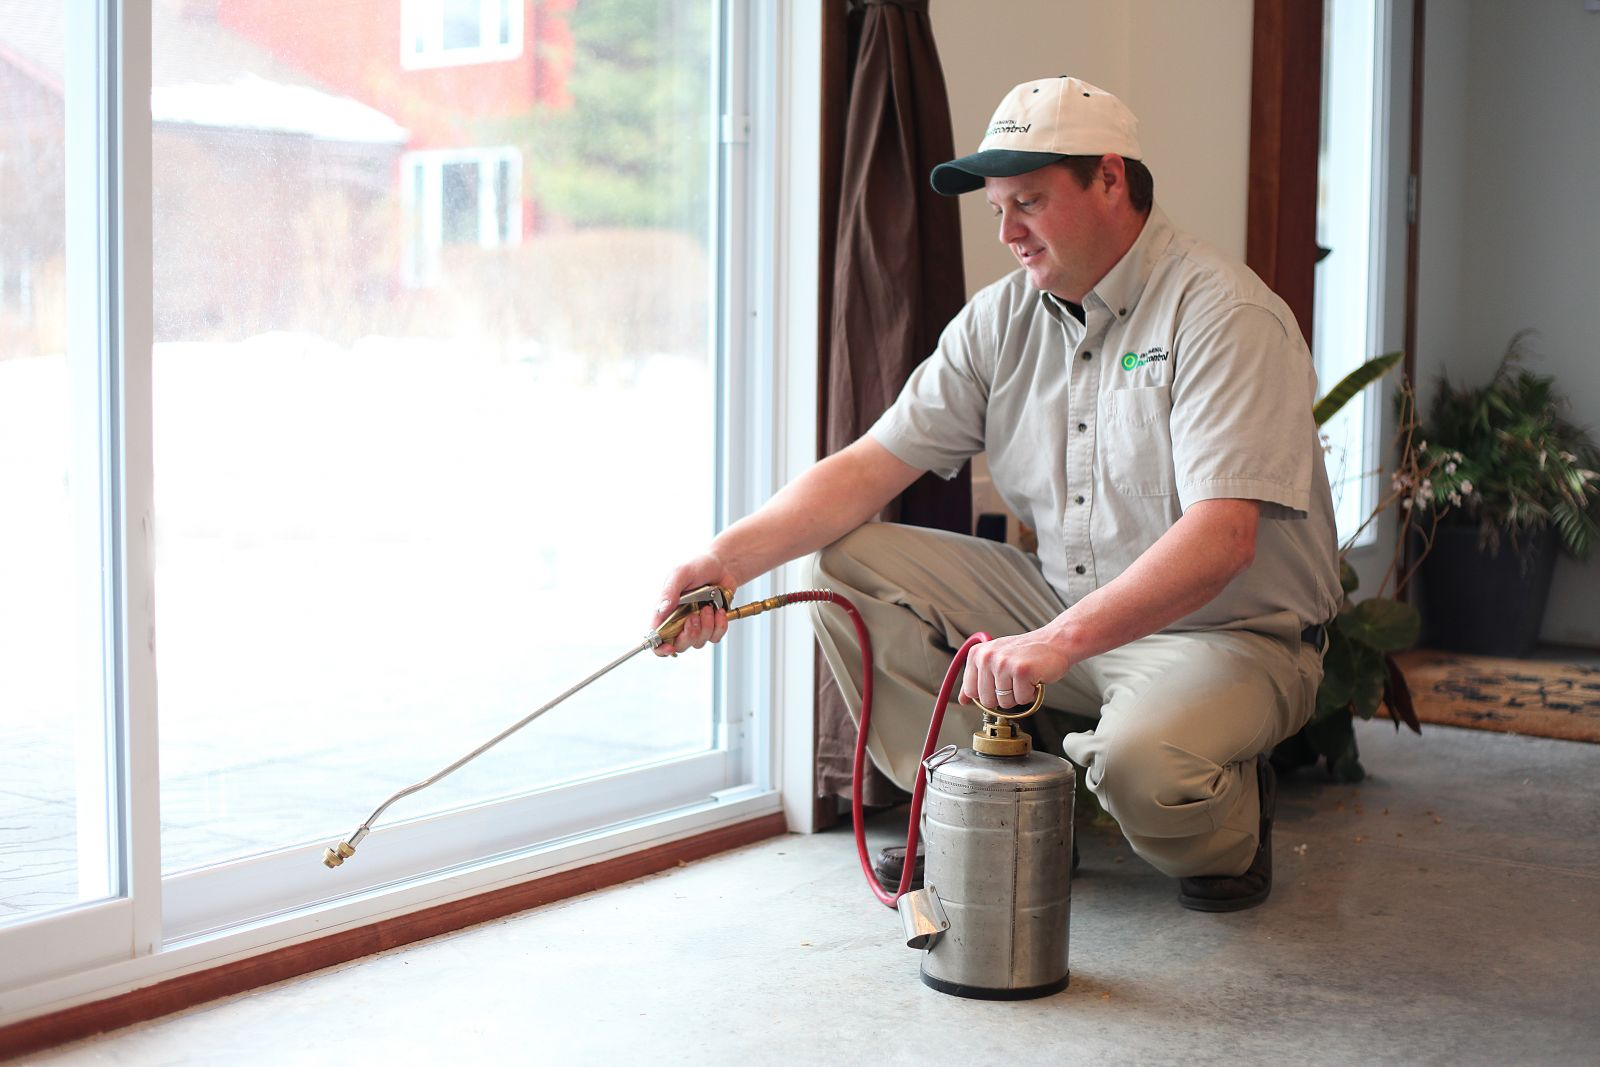 Licensed Pest Control Professional Applying Treatment Indoors